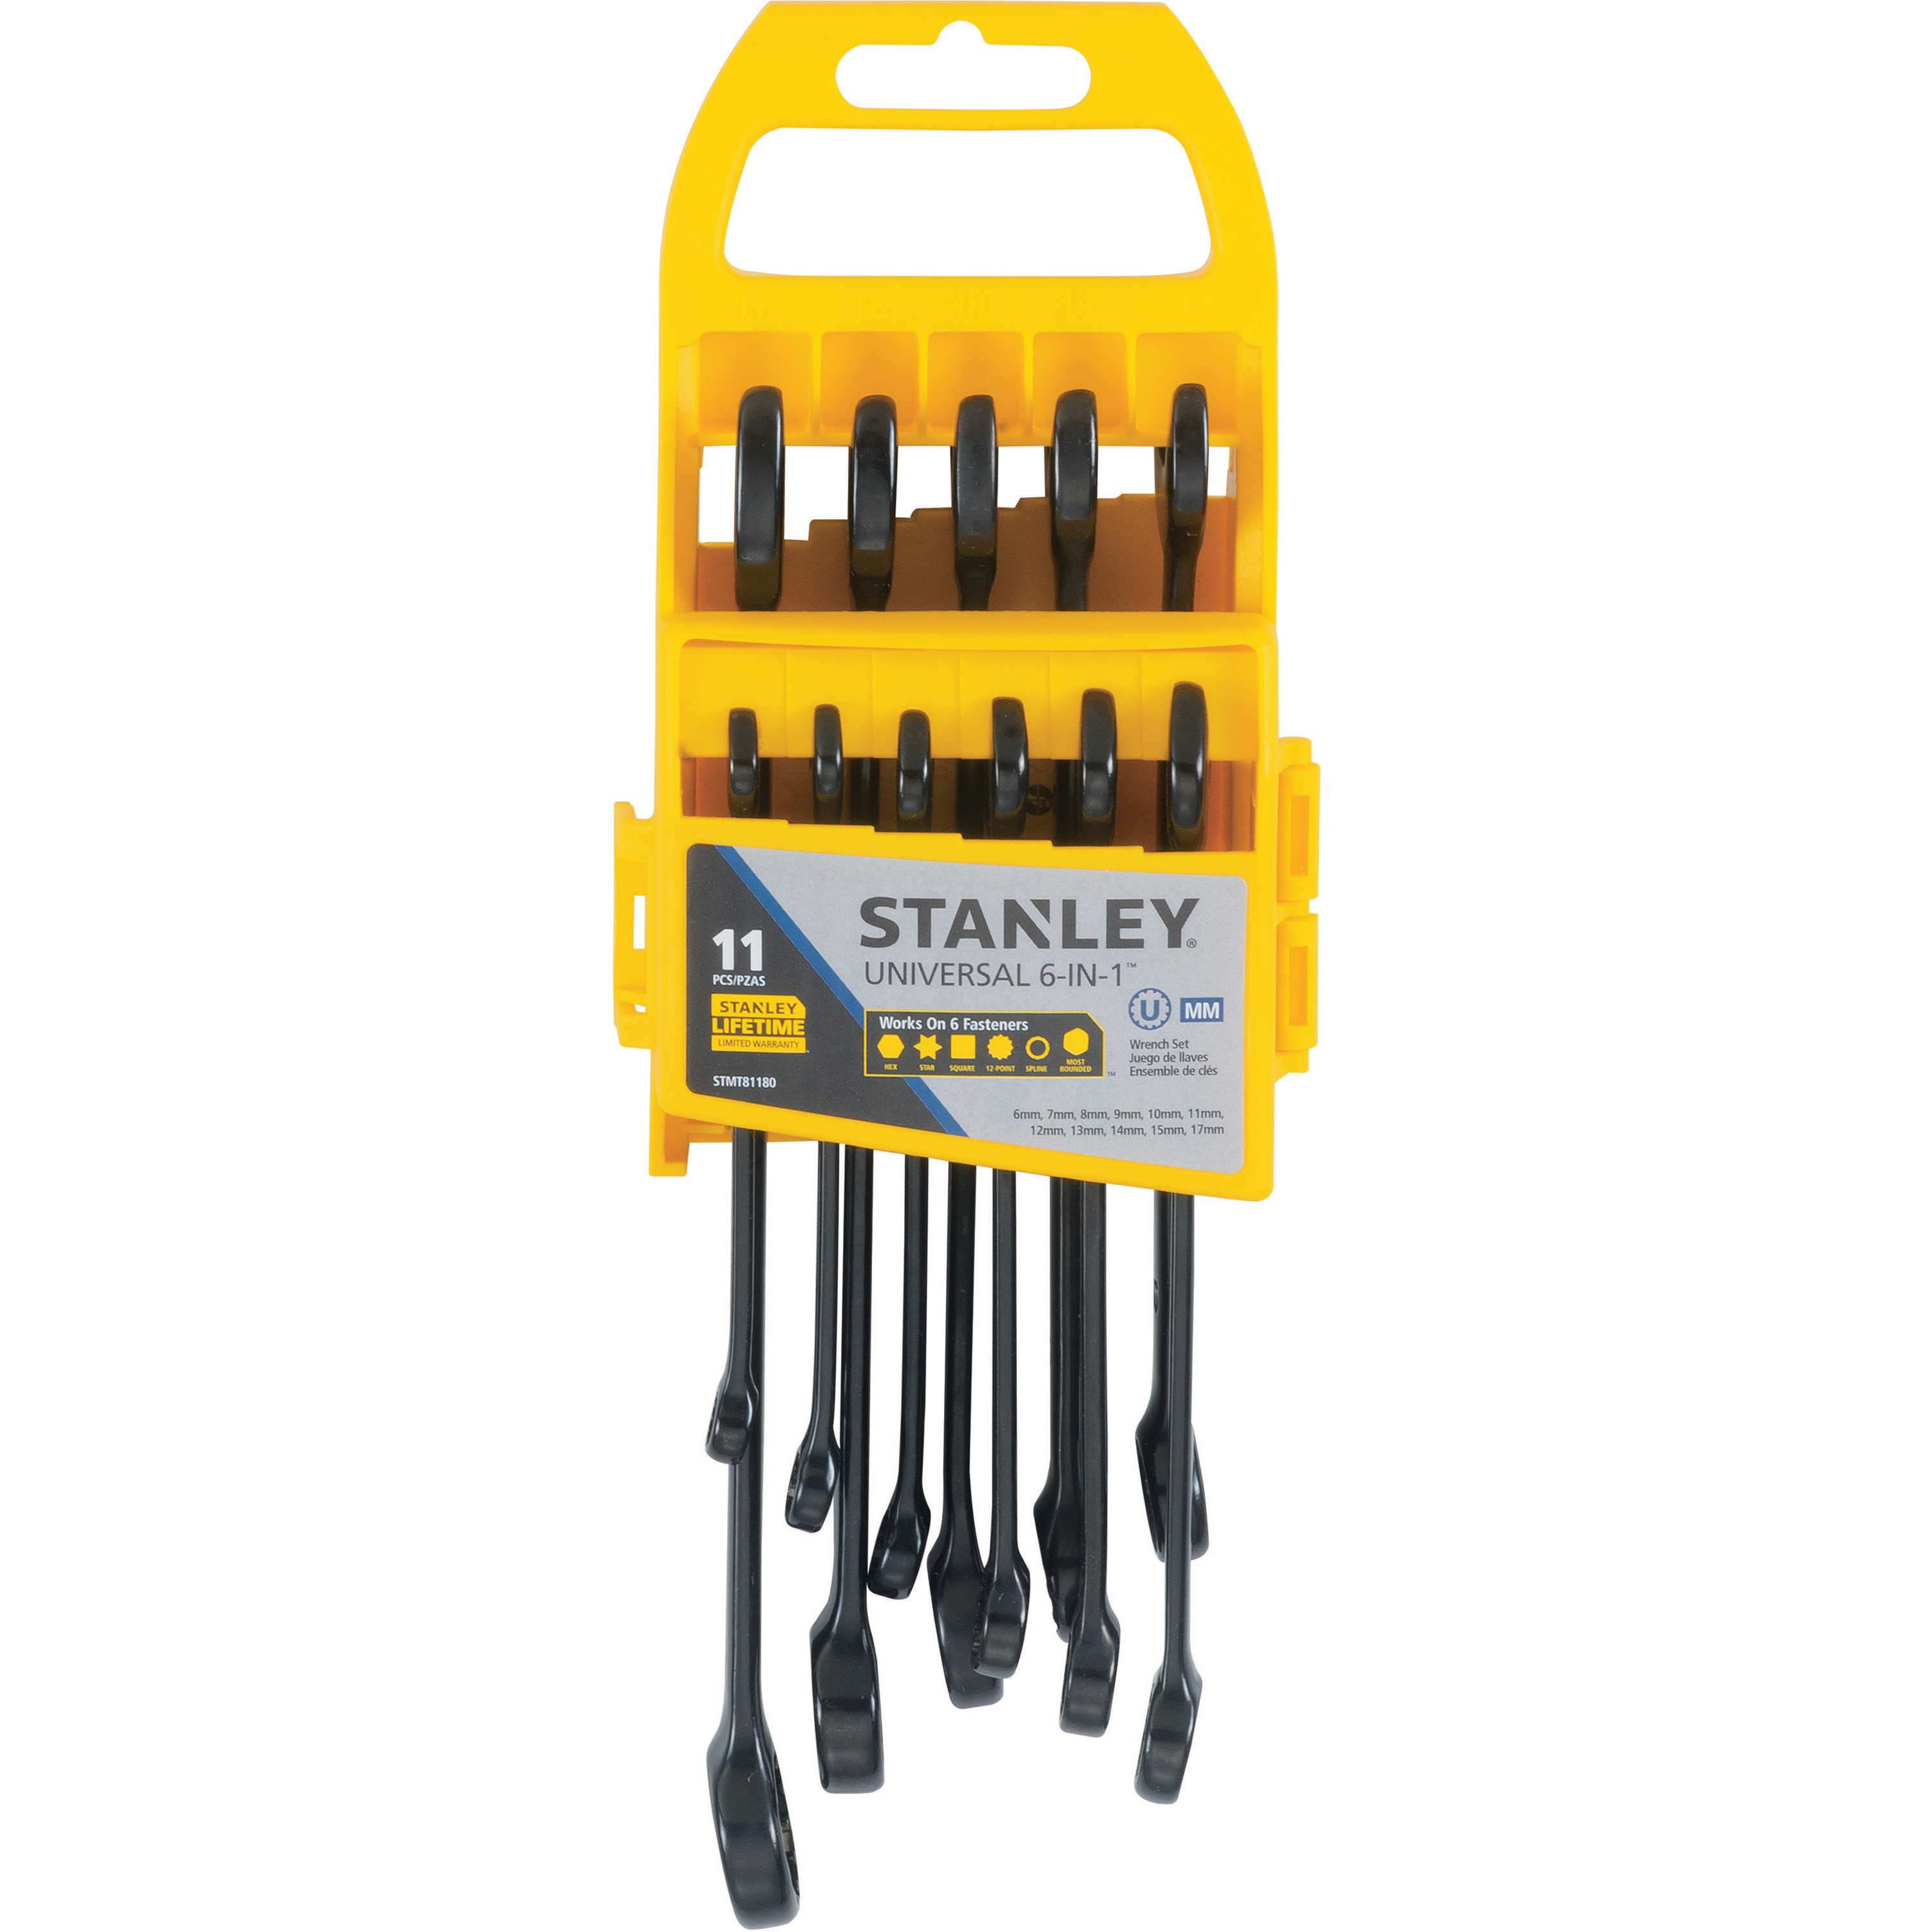 STANLEY STMT81180 11PC Universal Wrench Set MM